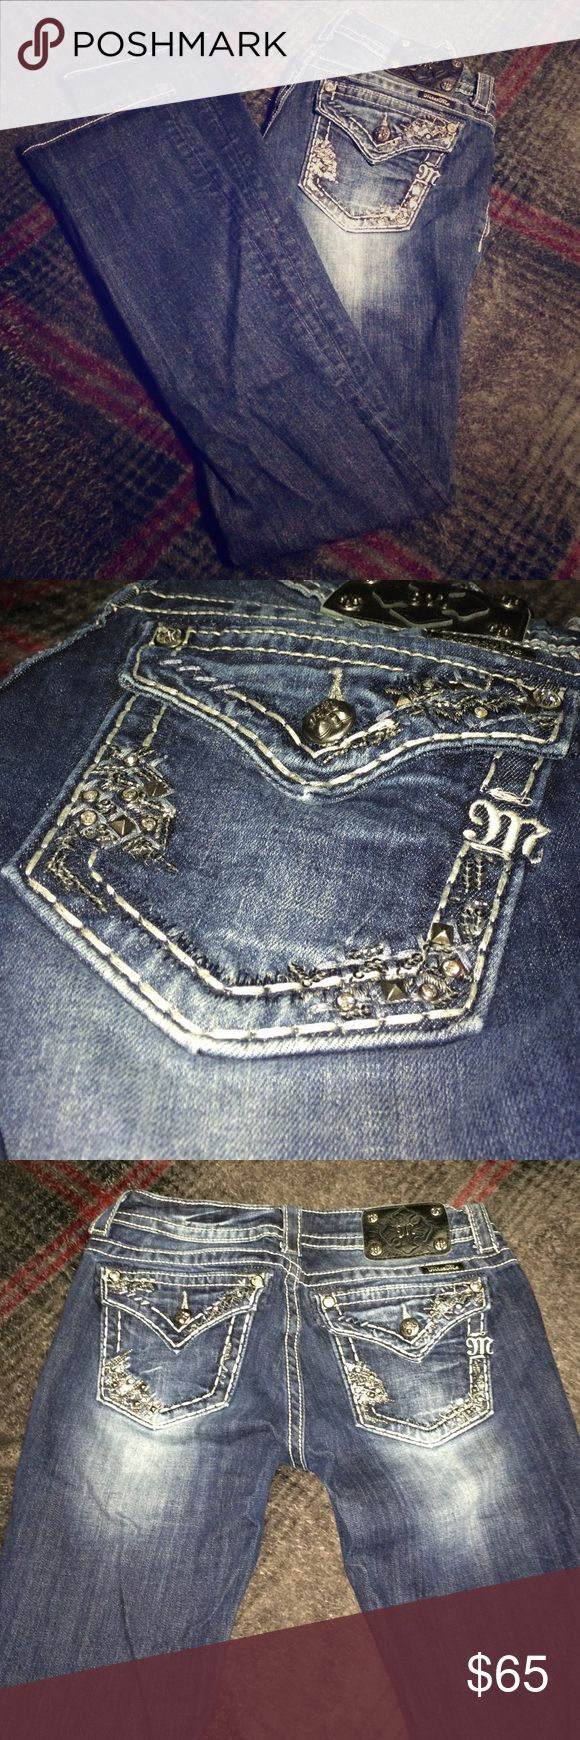 Miss Me Jeweled Jeans Perfect condition! Size 28, straight leg style. Signature rise. Miss Me brand. No fraying or holes. All stones in tact. So cute! Miss Me Jeans Straight Leg